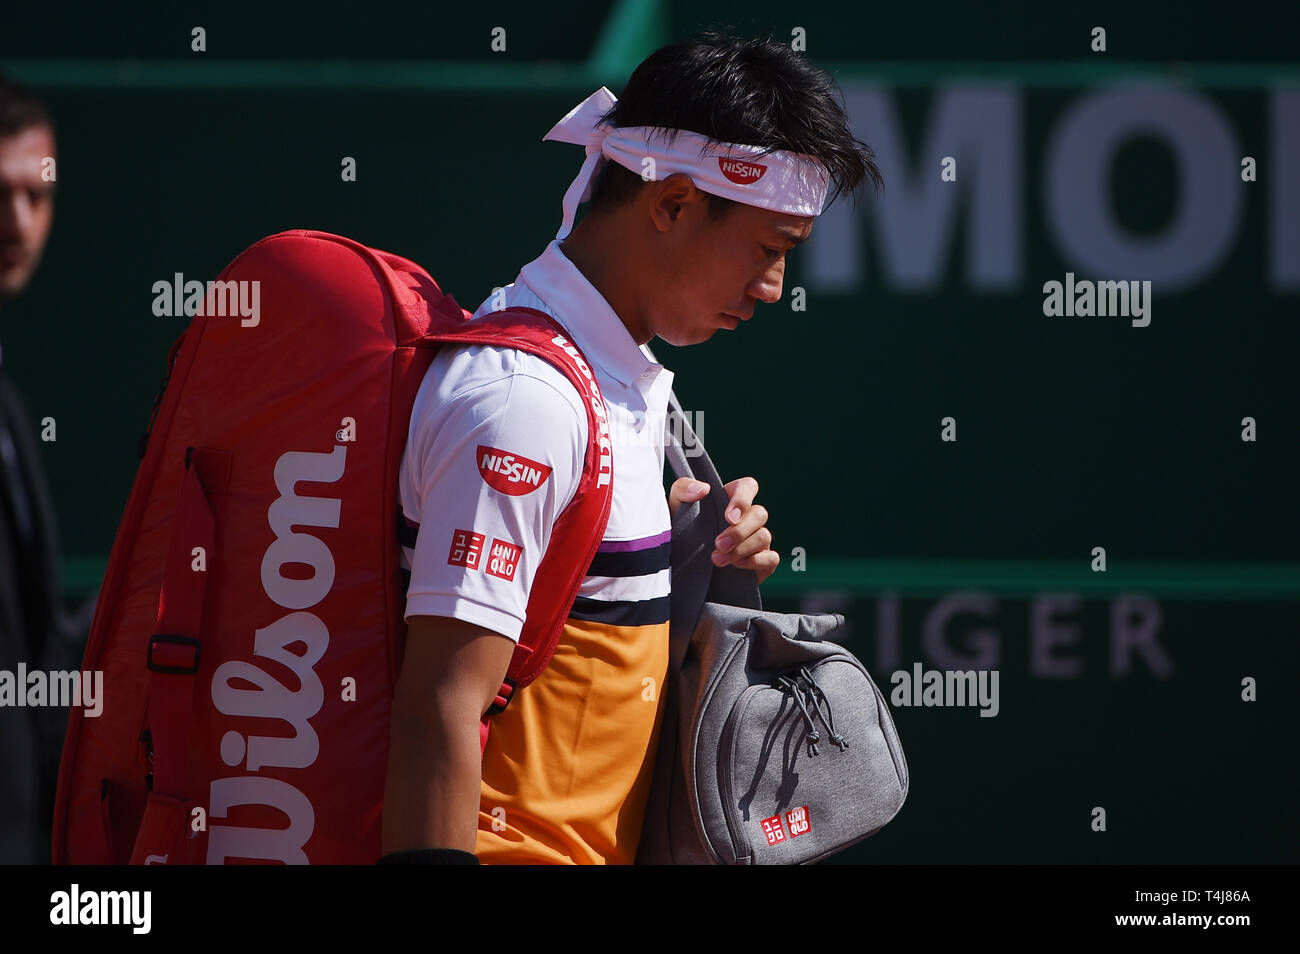 Roquebrune-Cap-Martin, France. 17th Apr, 2019. Kei Nishikori (JPN) Tennis : Men's Singles 2nd Round match during Monte Carlo Masters at Monte Carlo Country Club in Roquebrune-Cap-Martin, France . Credit: Itaru Chiba/AFLO/Alamy Live News Stock Photo